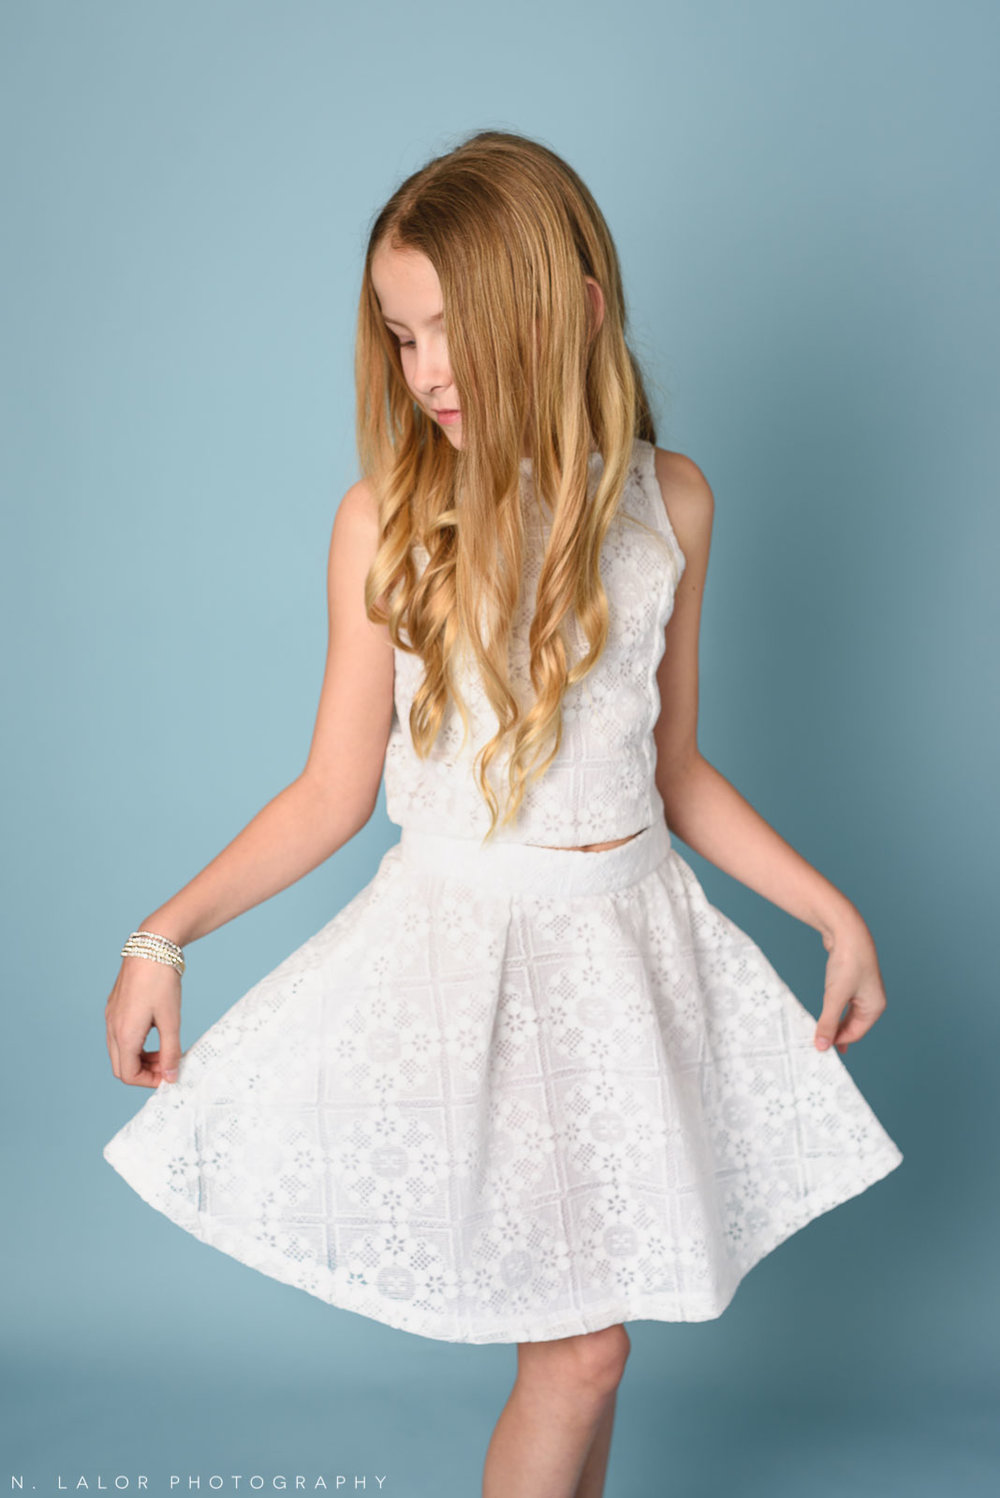 White Stella M'Lia dress. Kids fashion portrait by N. Lalor Photography. New Canaan, Connecticut.